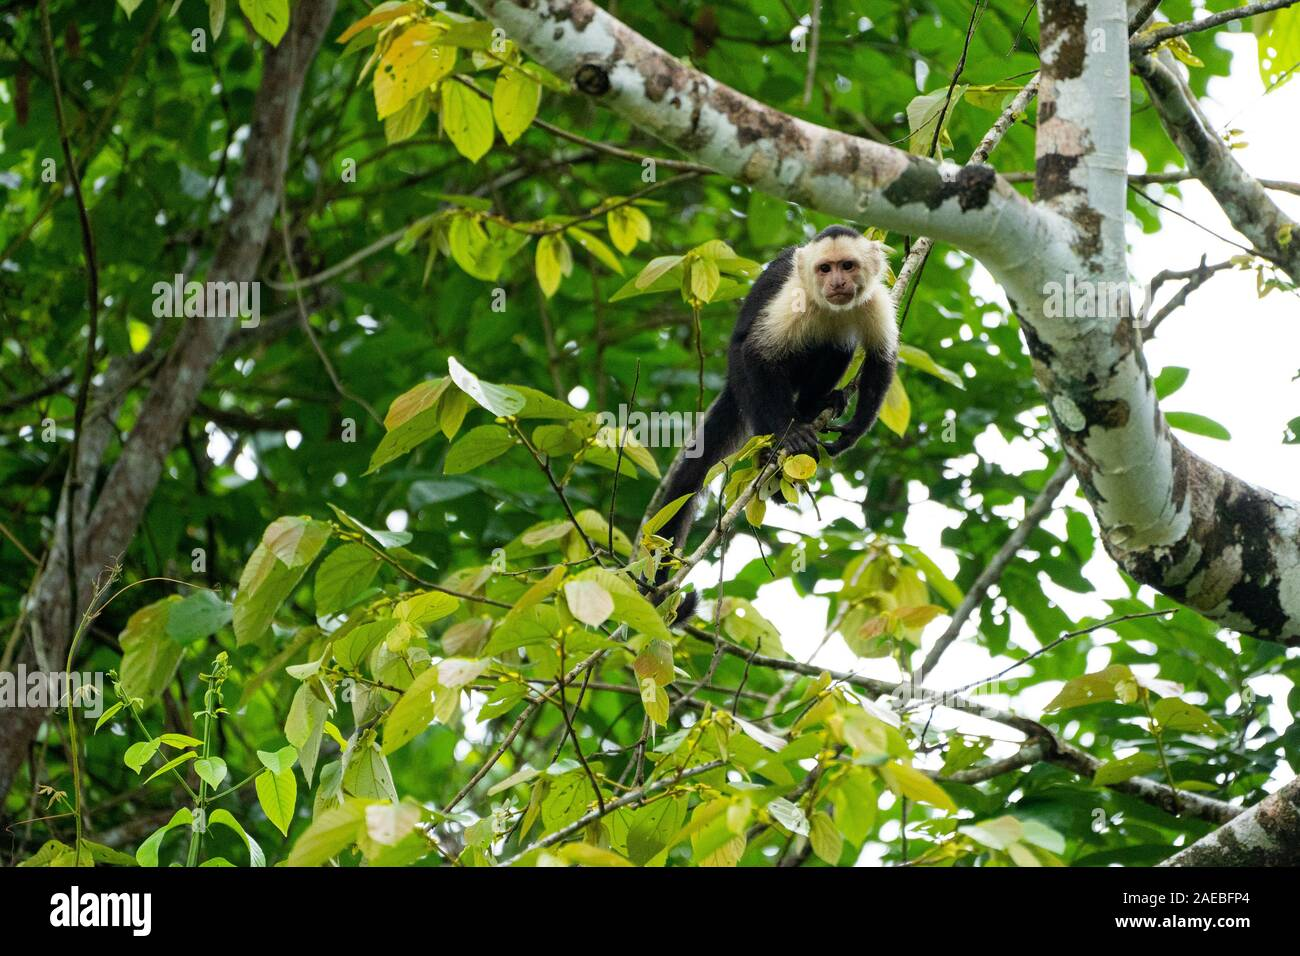 The Colombian white-faced capuchin (Cebus capucinus), also known as the Colombian white-headed capuchin or Colombian white-throated capuchin, is a med Stock Photo